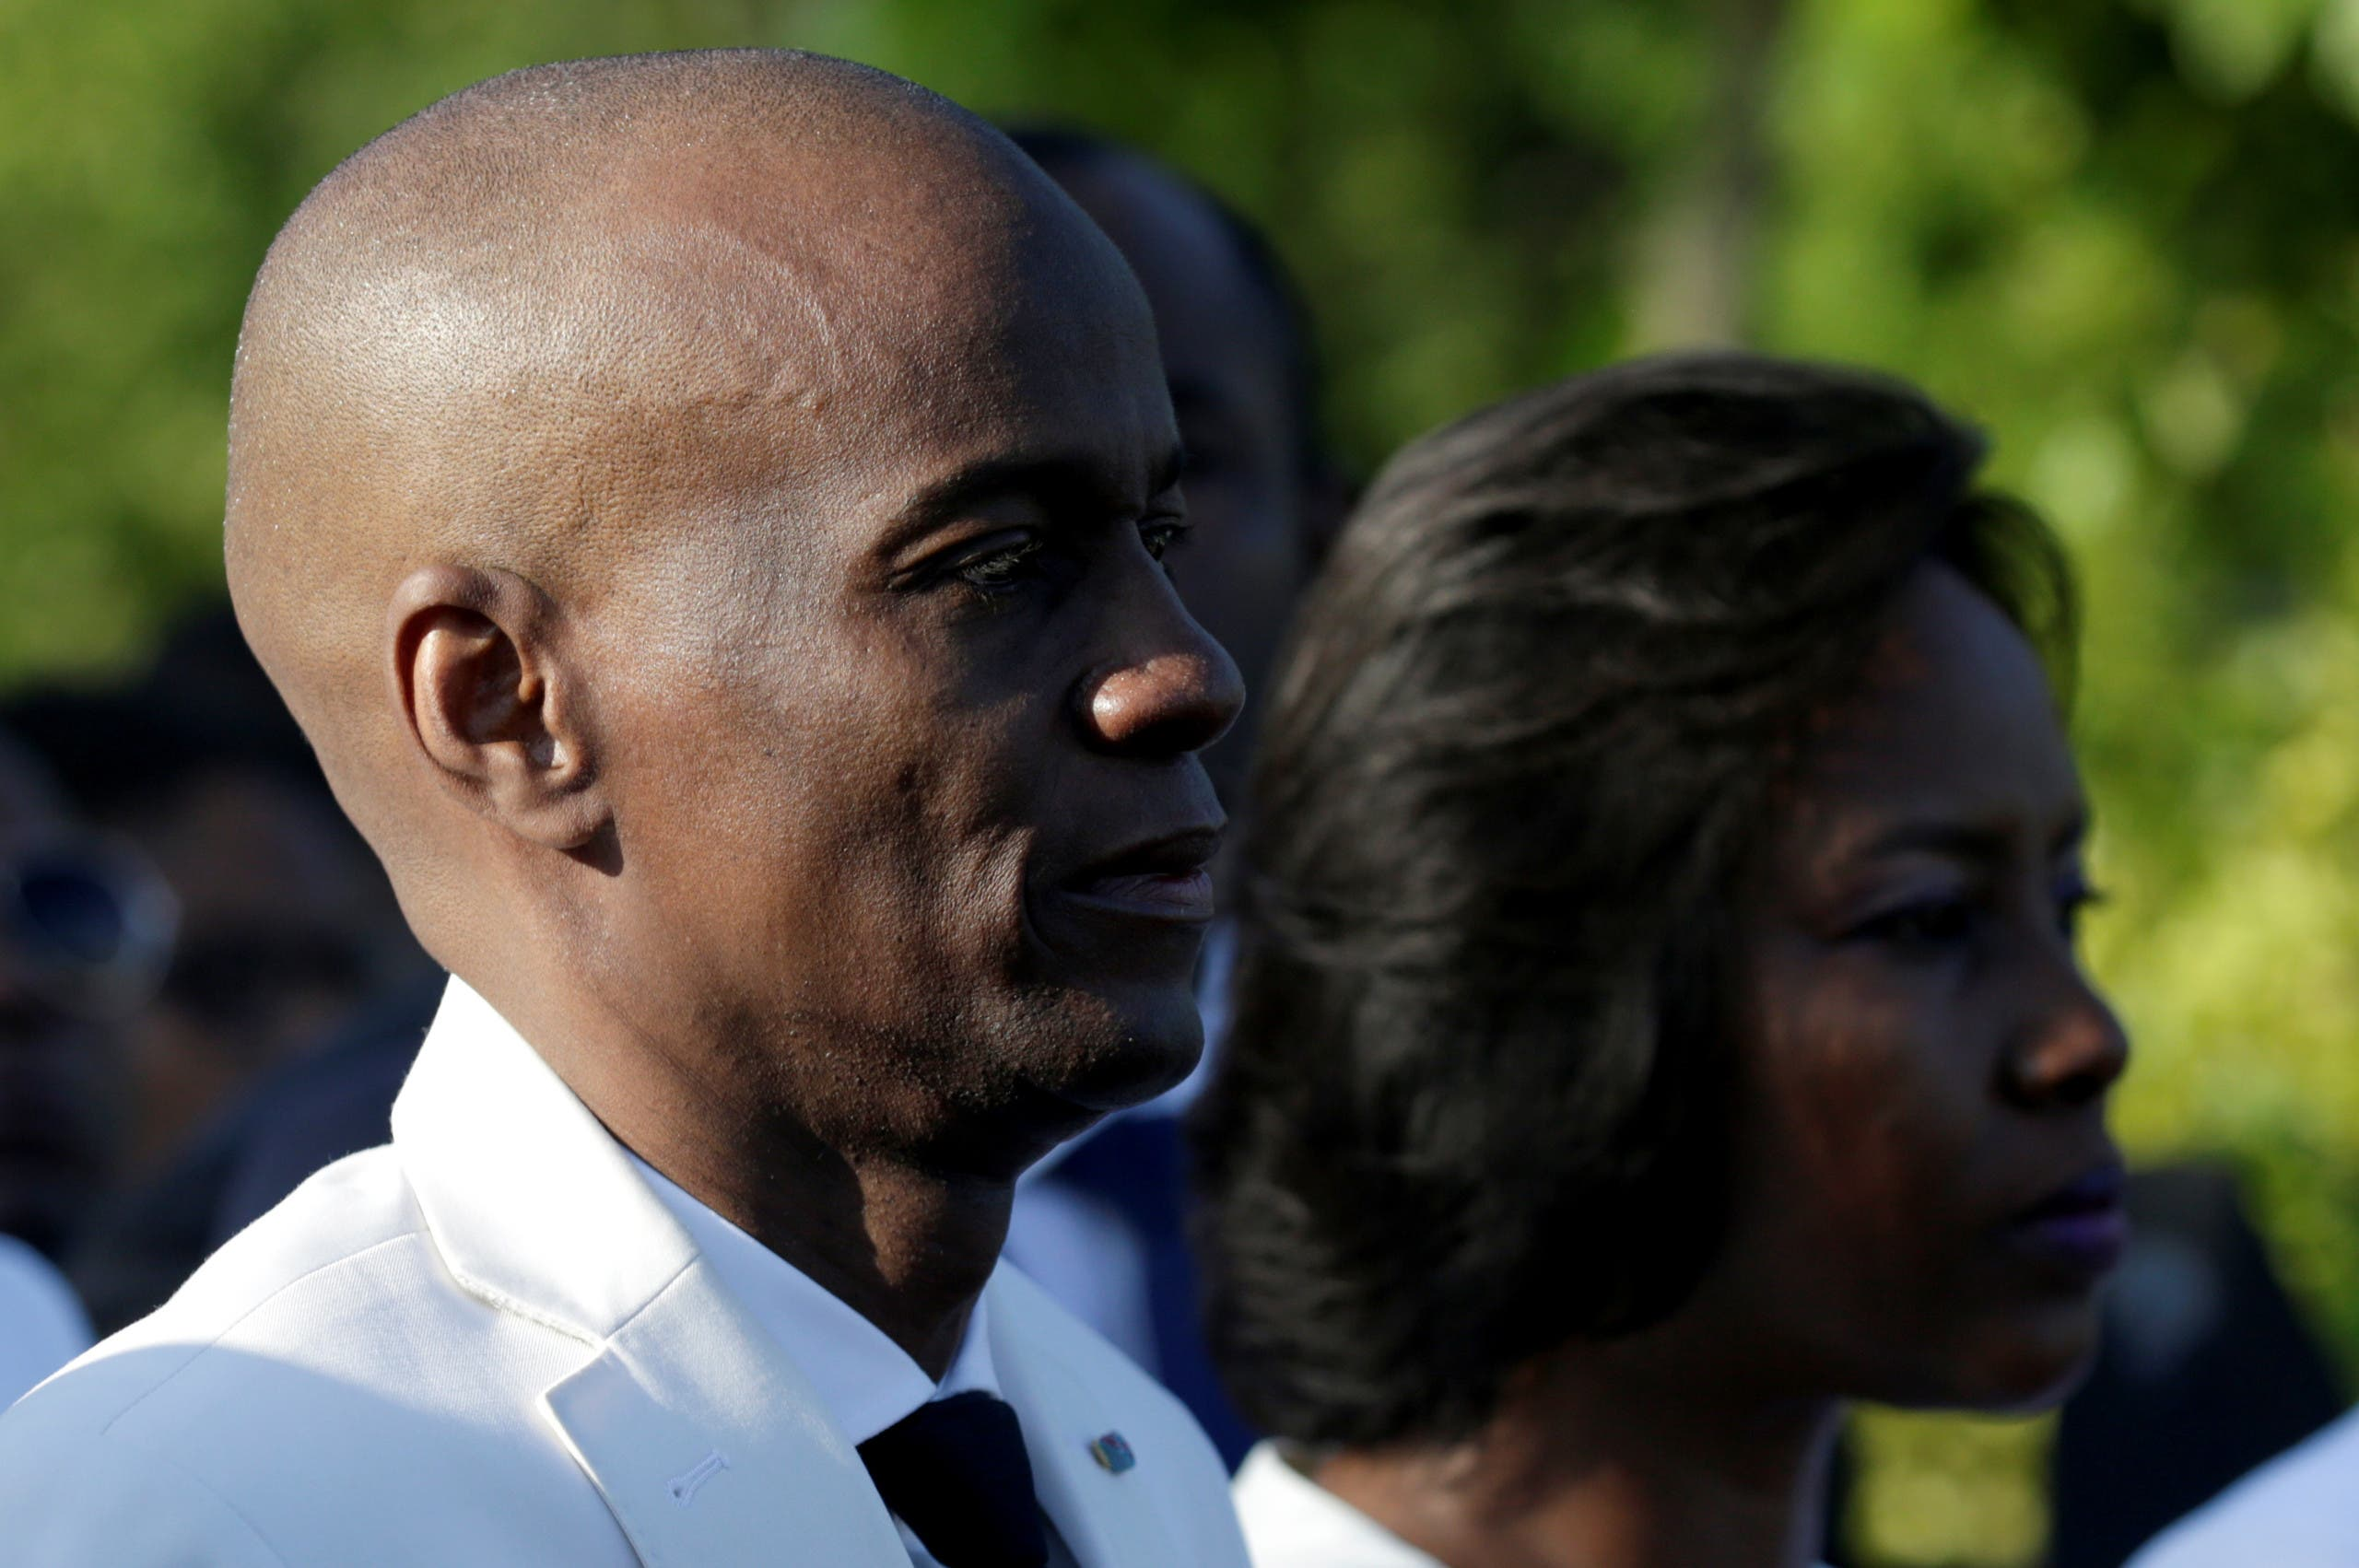 Haiti's President Jovenel Moise and first lady Martine attend a ceremony at a memorial for the tenth anniversary of the January 12, 2010 earthquake, in Titanyen, Haiti, January 12, 2020. (Reuters)